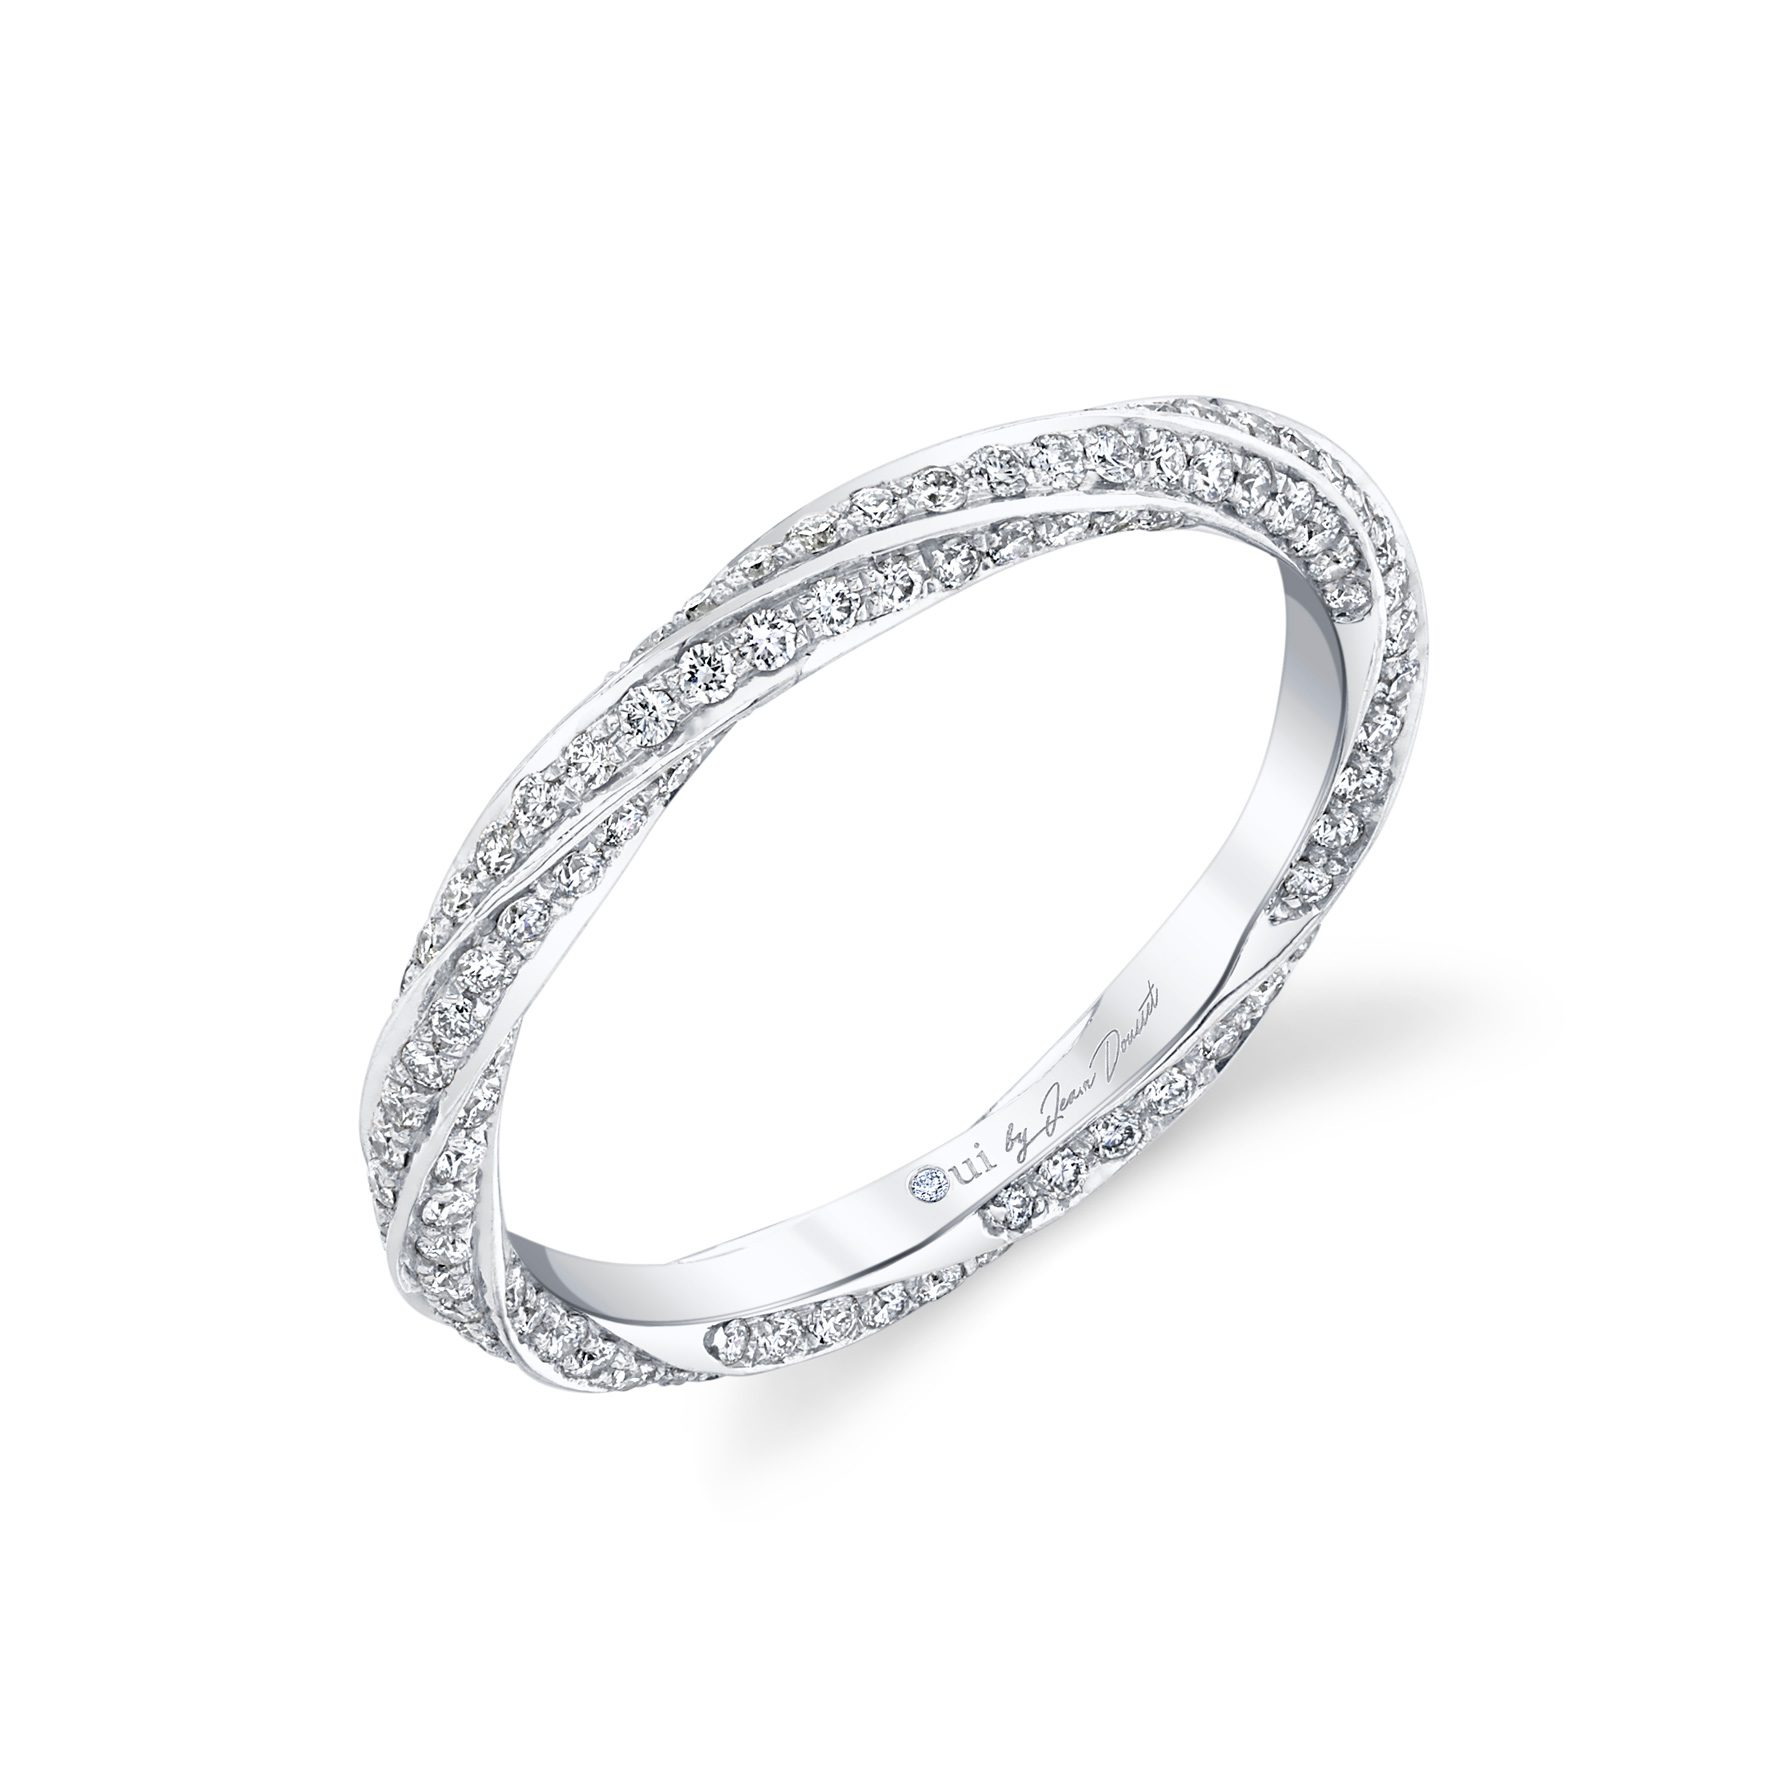 Camille Women's Wedding Band with a diamond pavé twist in 18k White Gold Standing View by Oui by Jean Dousset